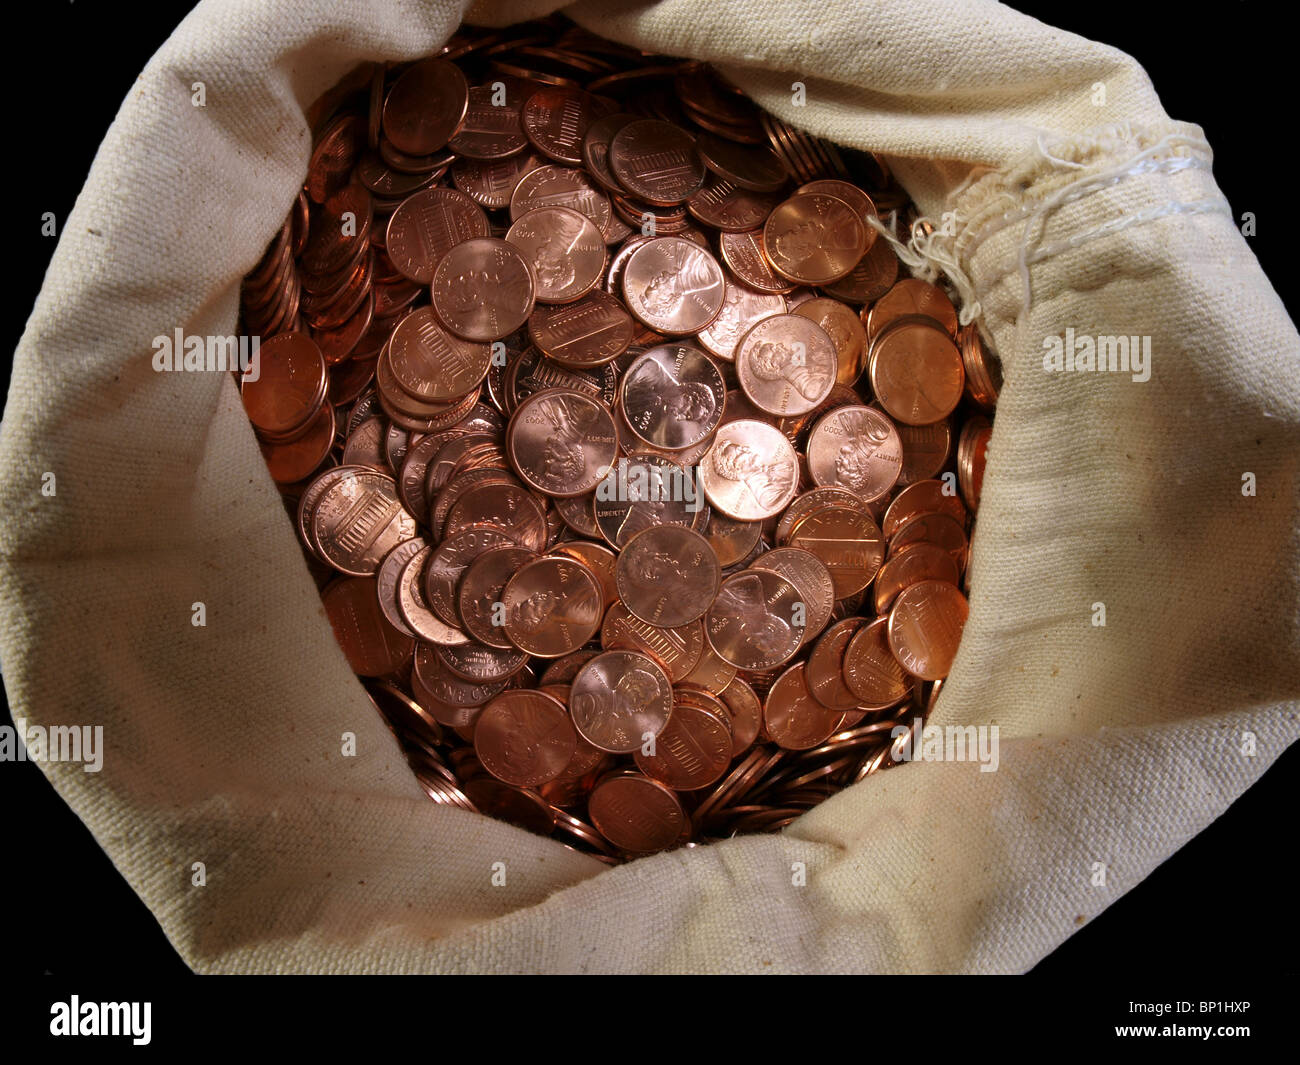 Shiny, new pennies in a vintage canvas money sack. - Stock Image